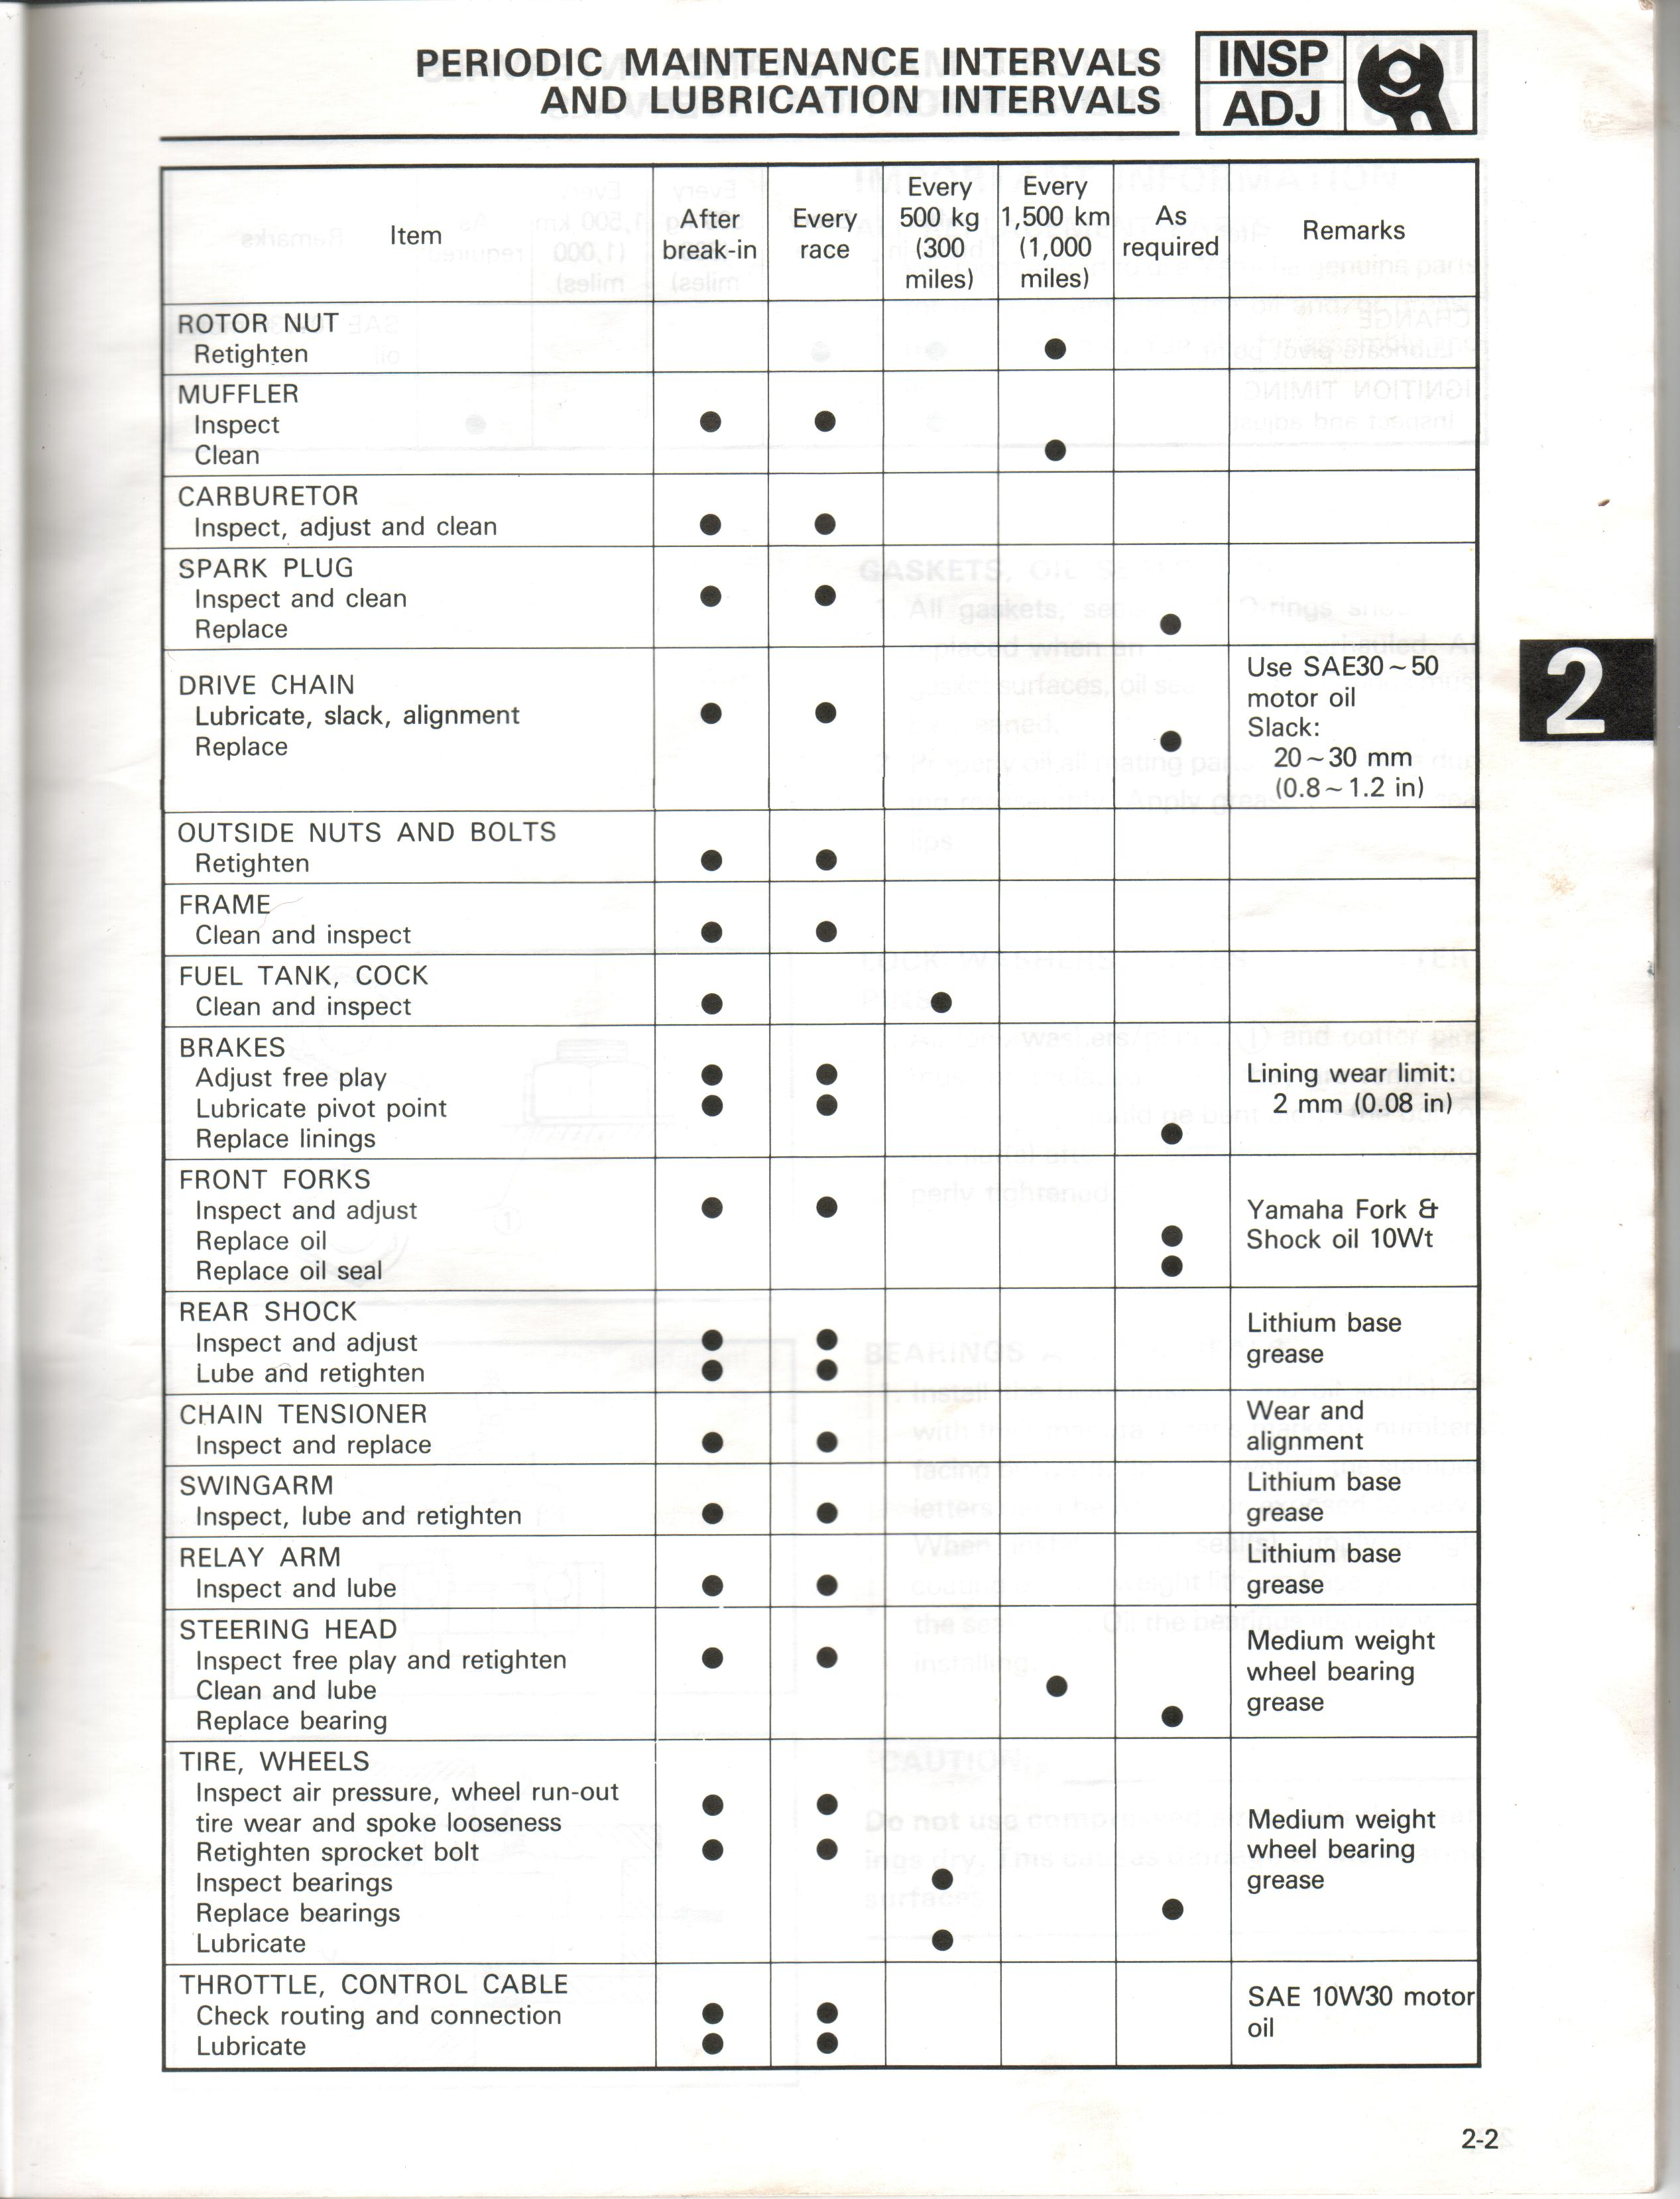 Yamaha ty manual periodic maintenance intervals and lubrication intervals chart nvjuhfo Image collections